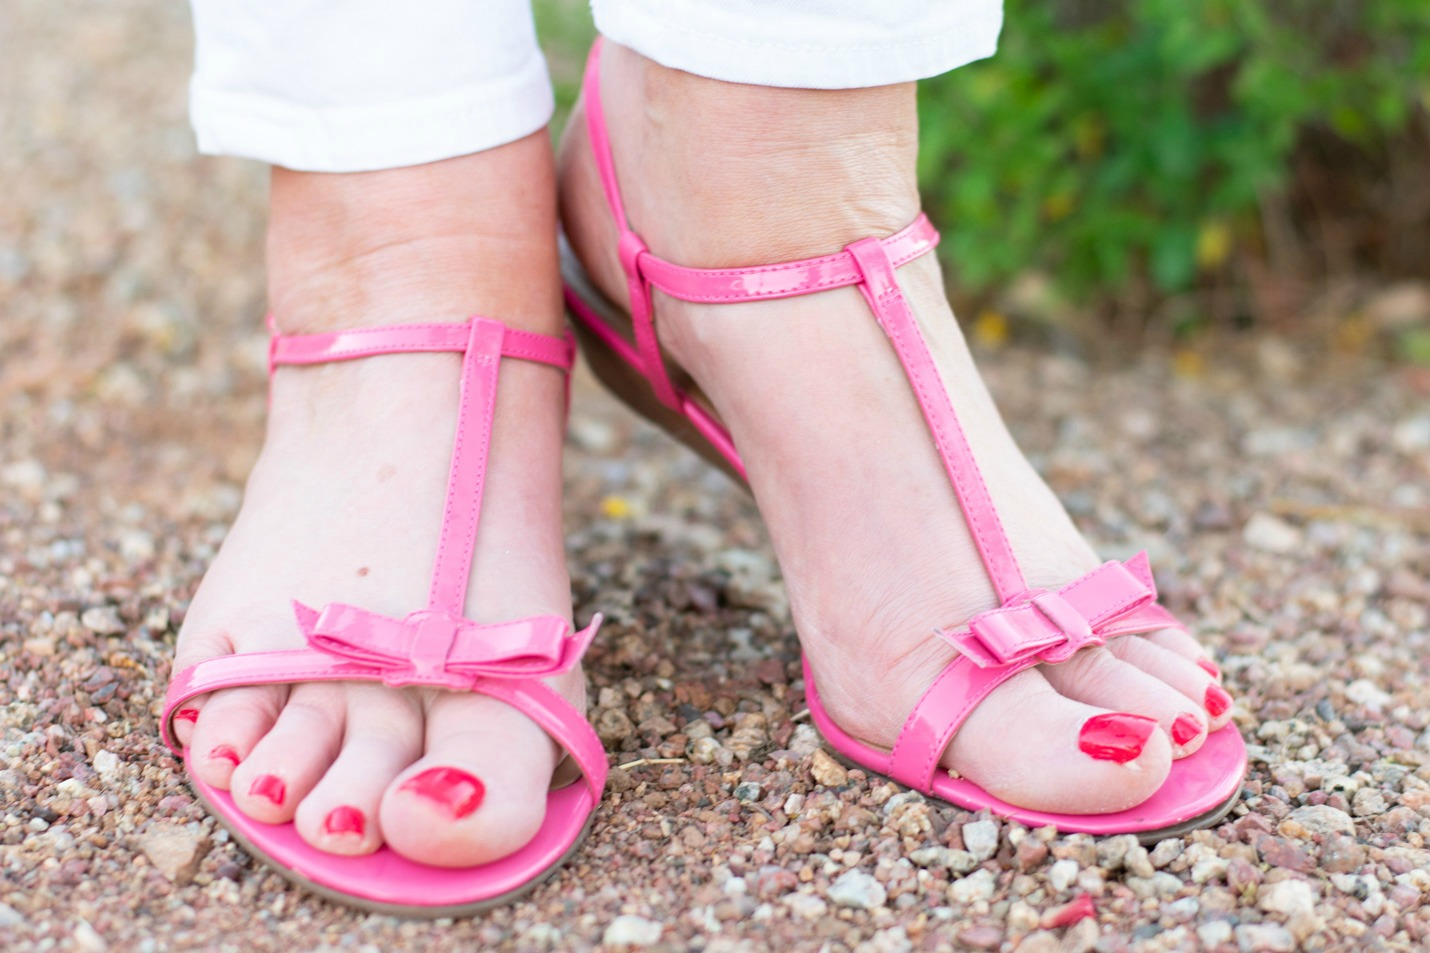 White skinny jeans with pink sandals